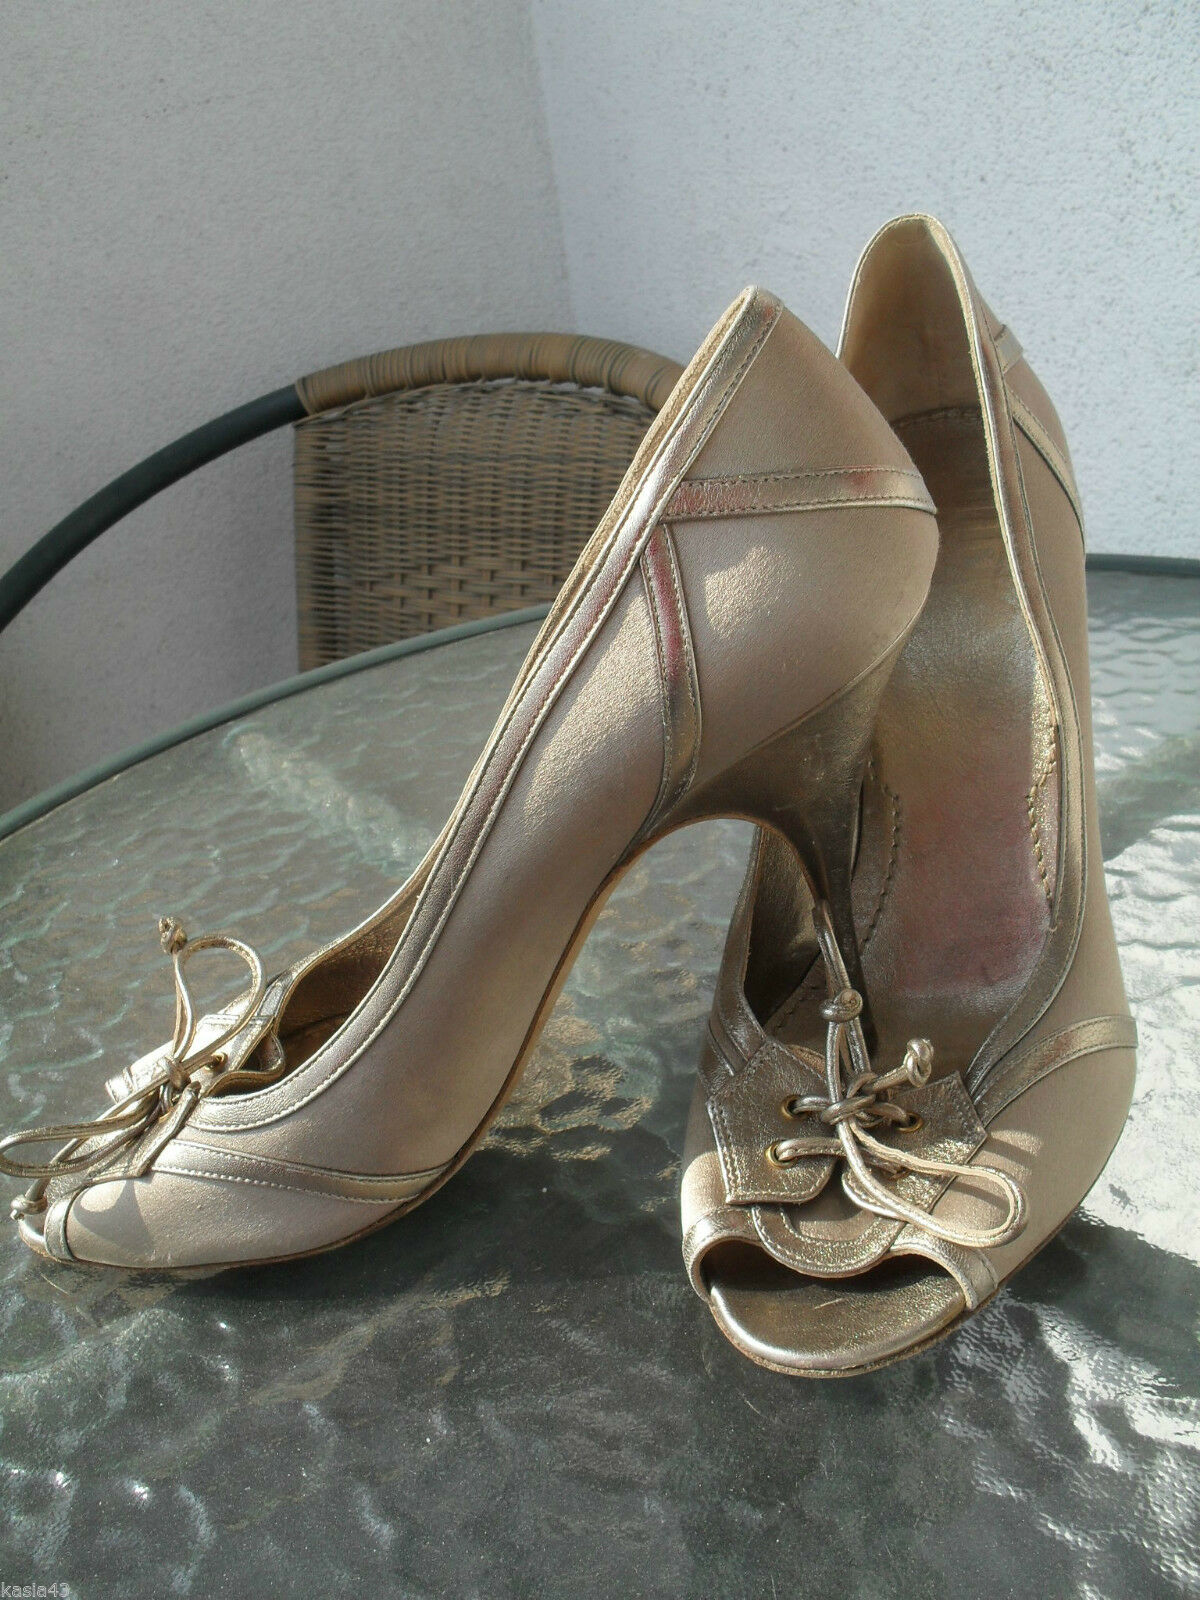 GIVENCHY Gold Satin Open Toe Stiletto Pumps Leder trim Größe 39,5 / 9-9,5 US